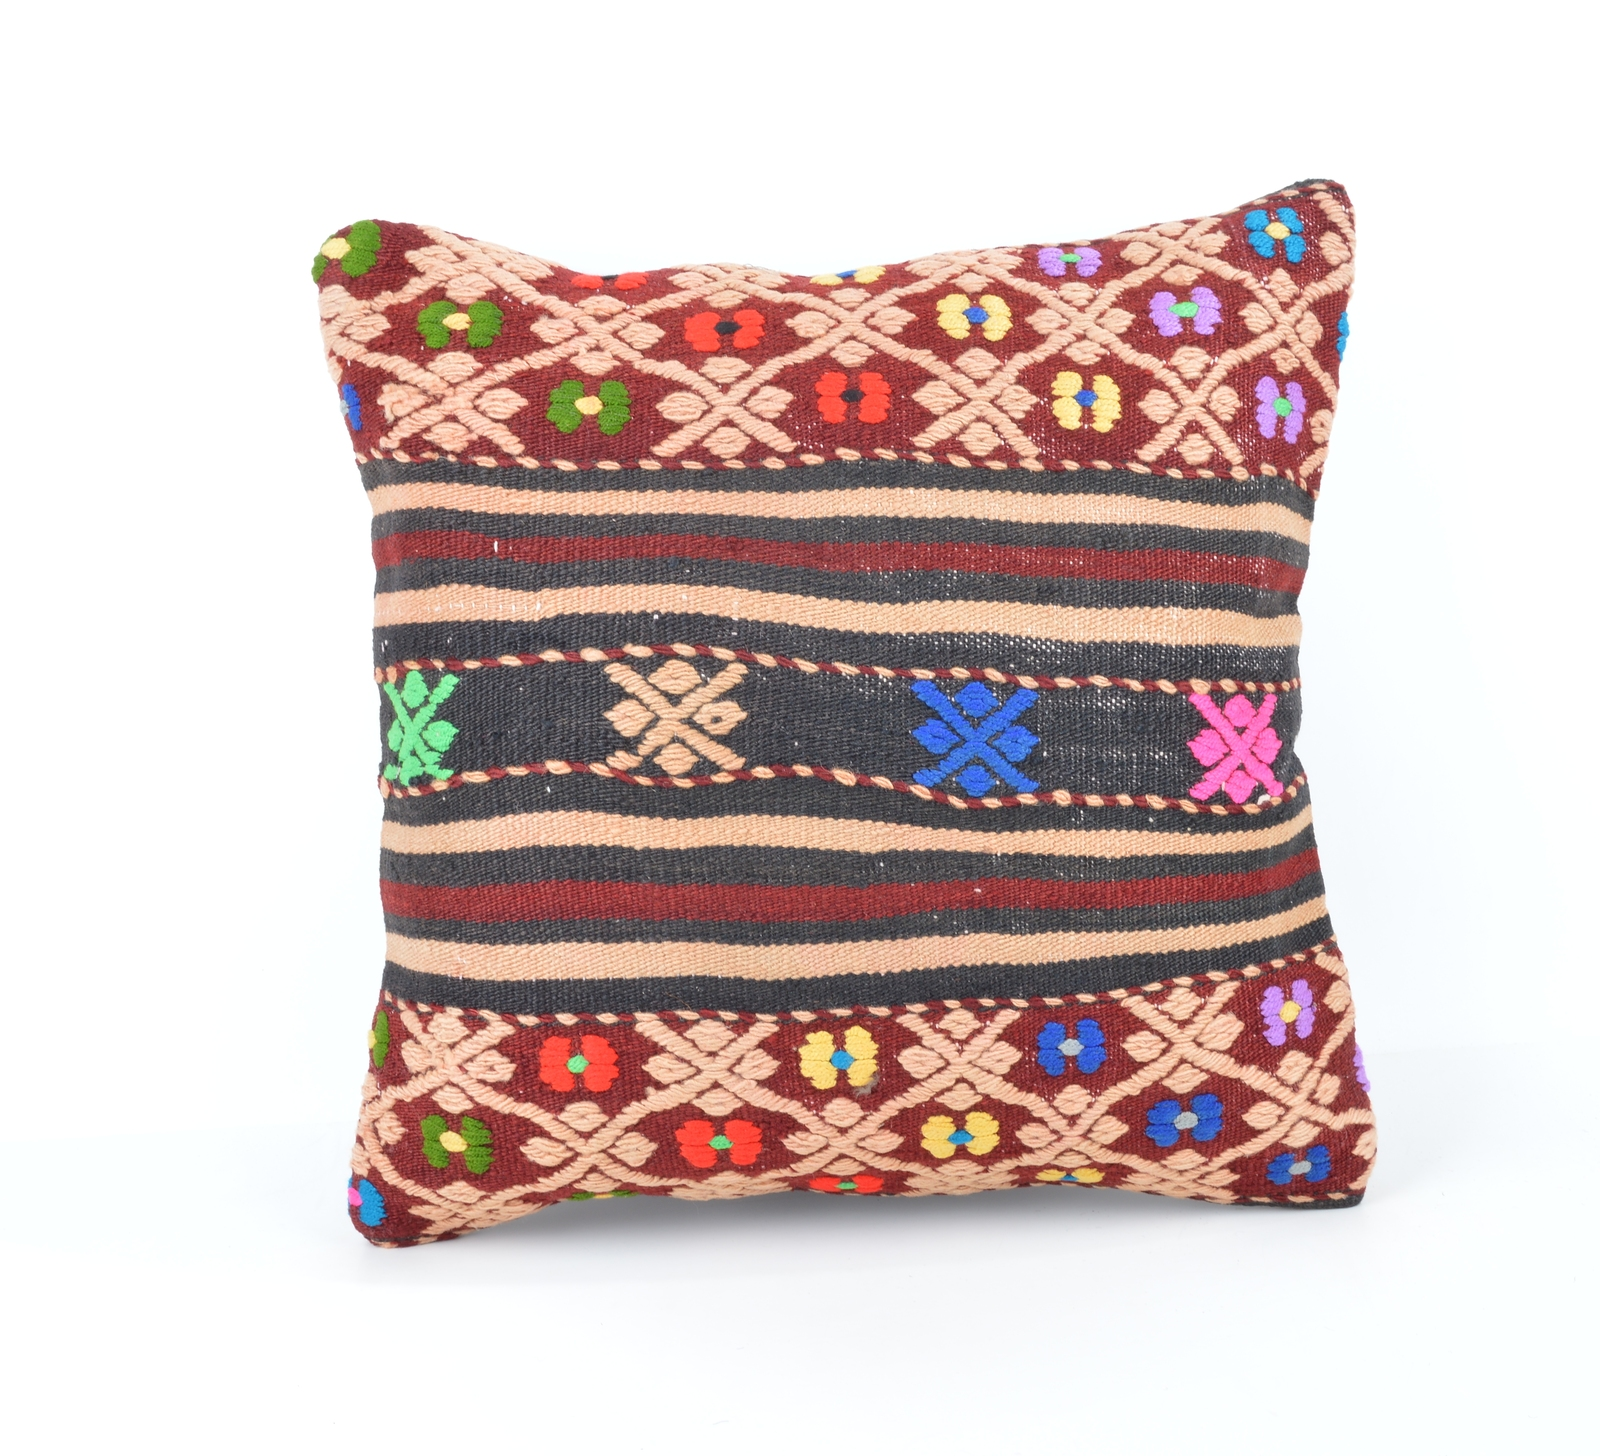 Decorative Tapestry Throw Pillows : throw pillow cover,outdoor pillow cover,boho tapestry ethnic,Decorative Accent, - Pillows